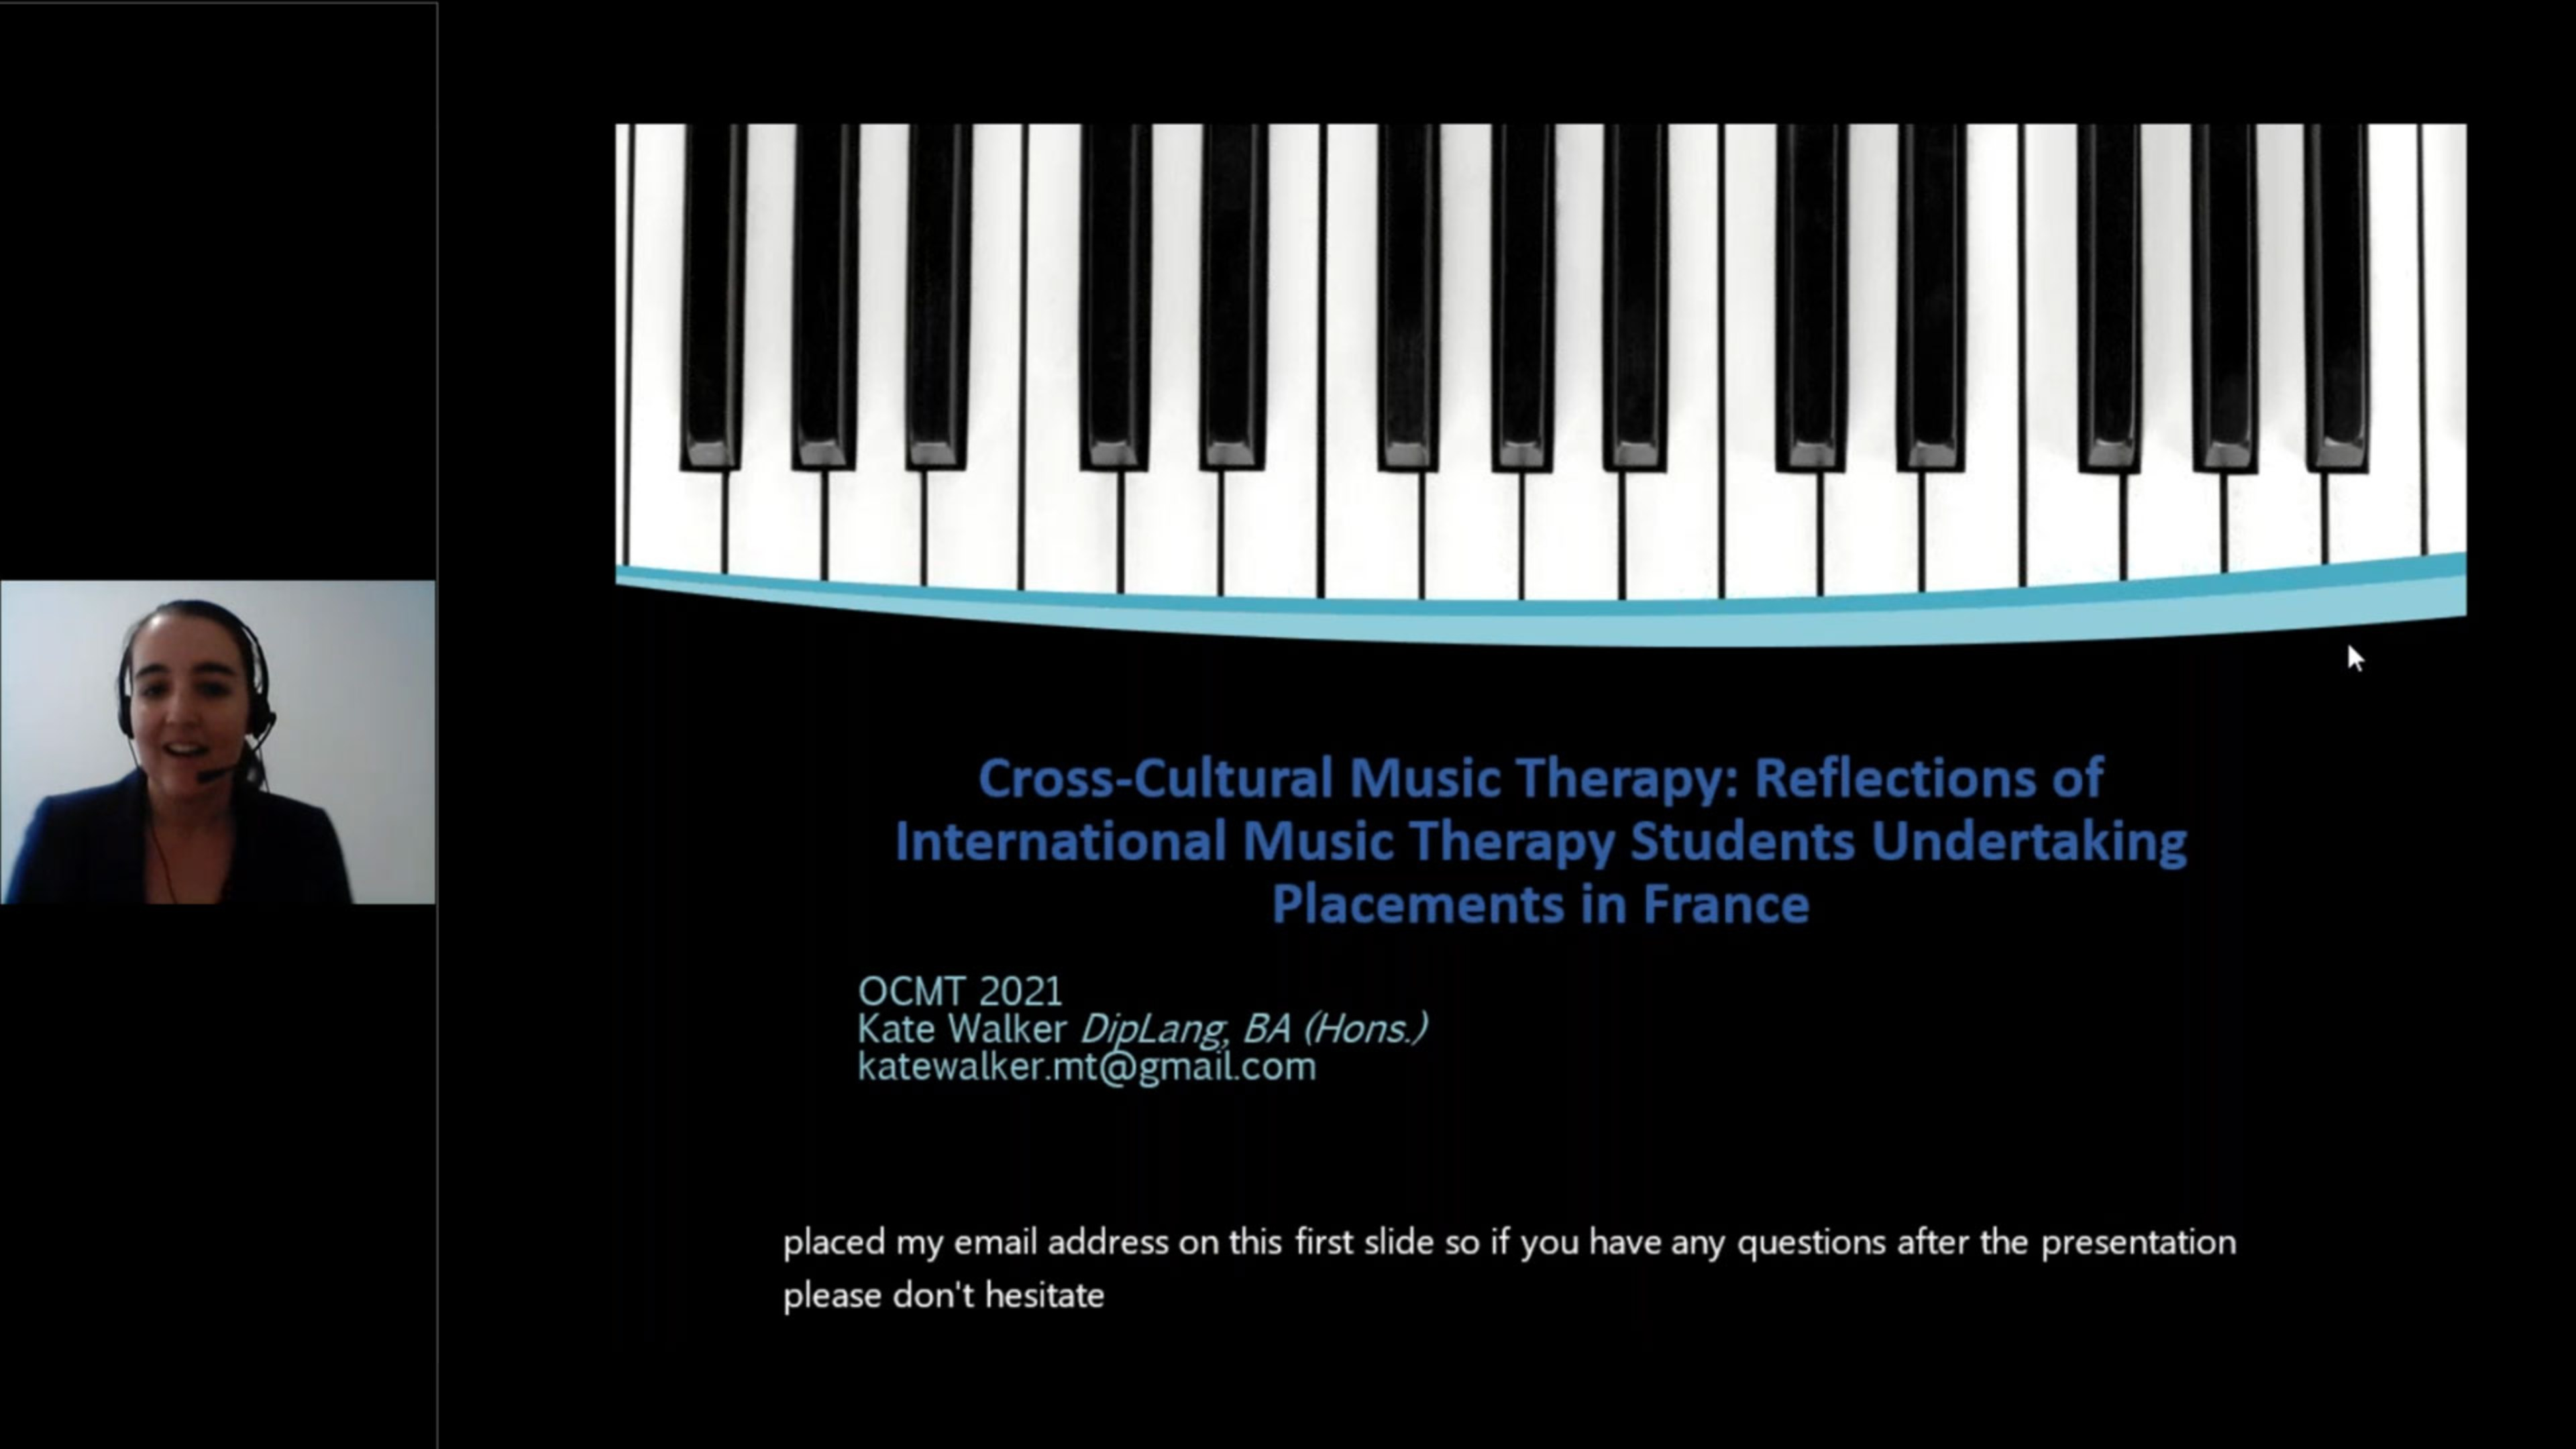 Cross-Cultural Music Therapy: Reflections of Music Therapy Students Undertaking Placements Internati